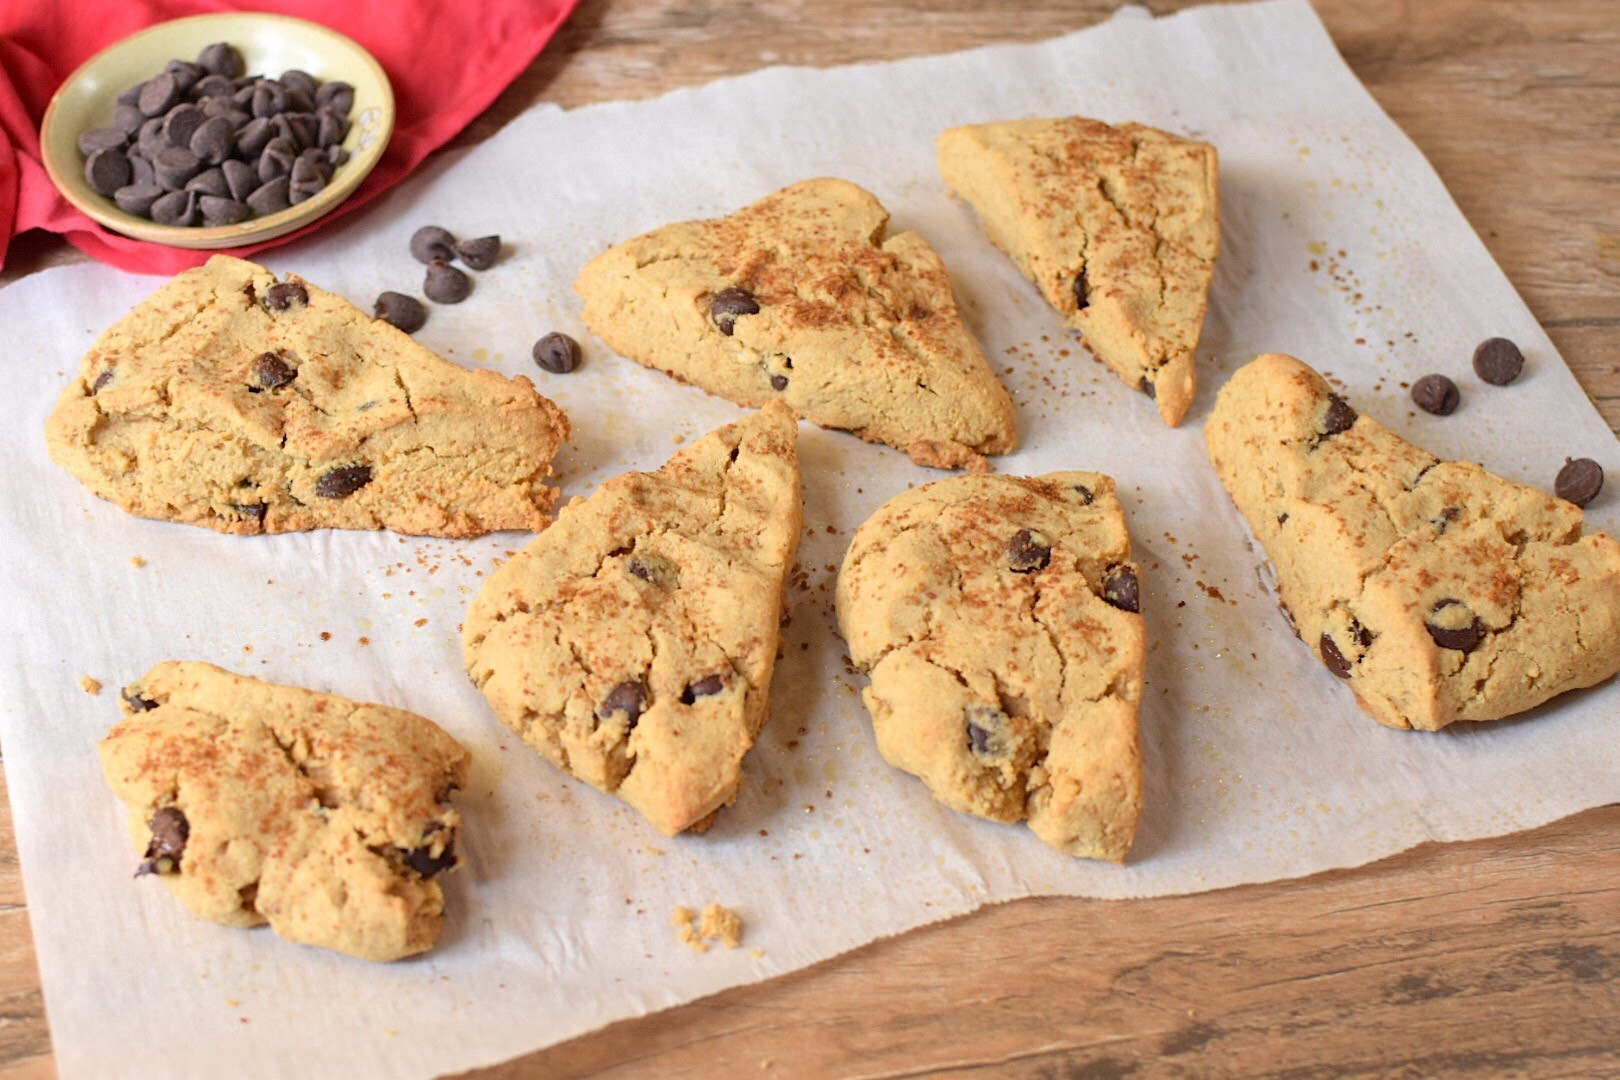 Chocolate Chip Scones for a Candida Diet